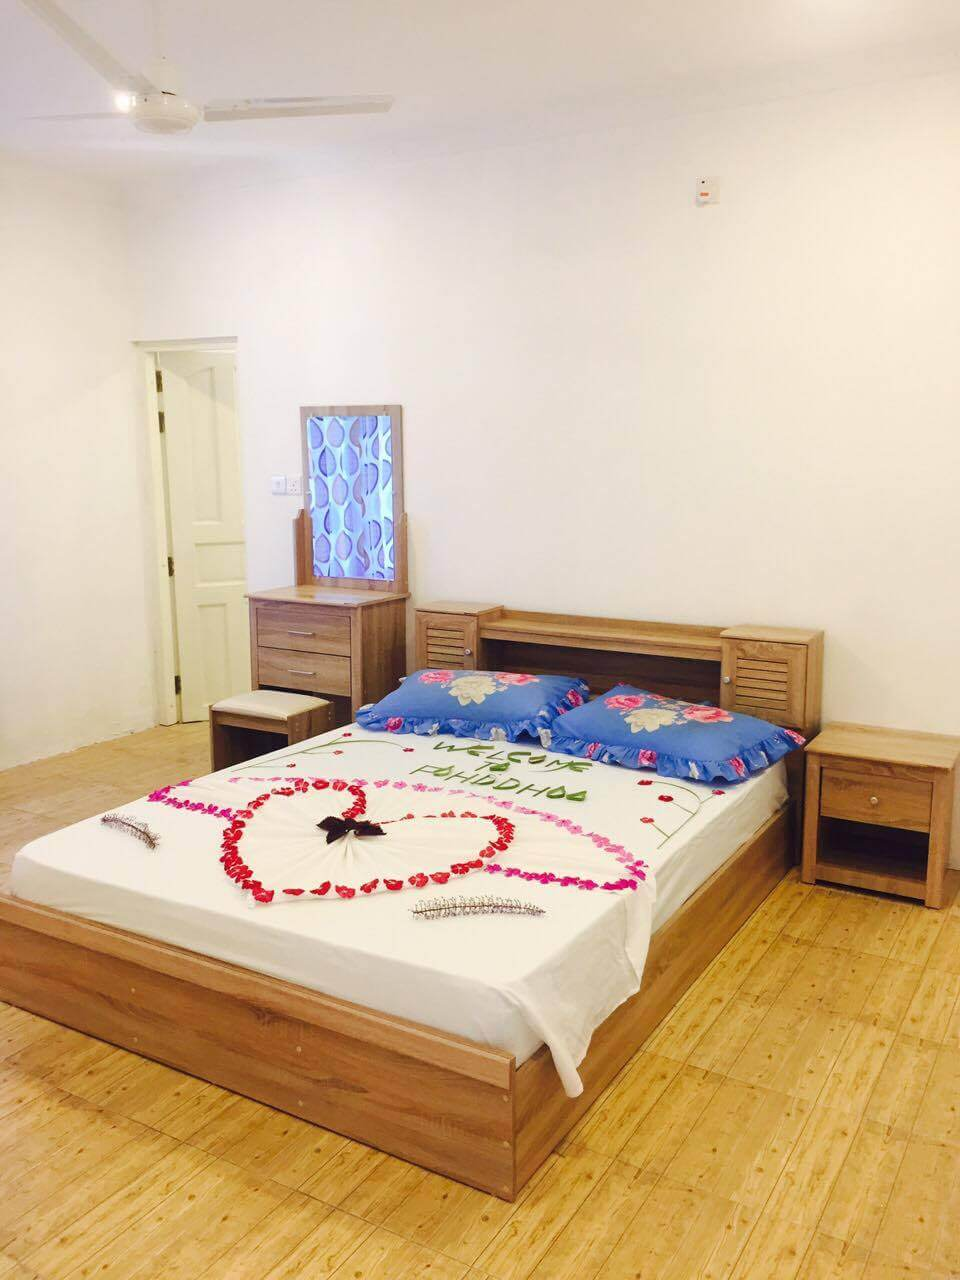 Fodhdhoo Guest House Bedroom 10 Beach Heaven Maldive